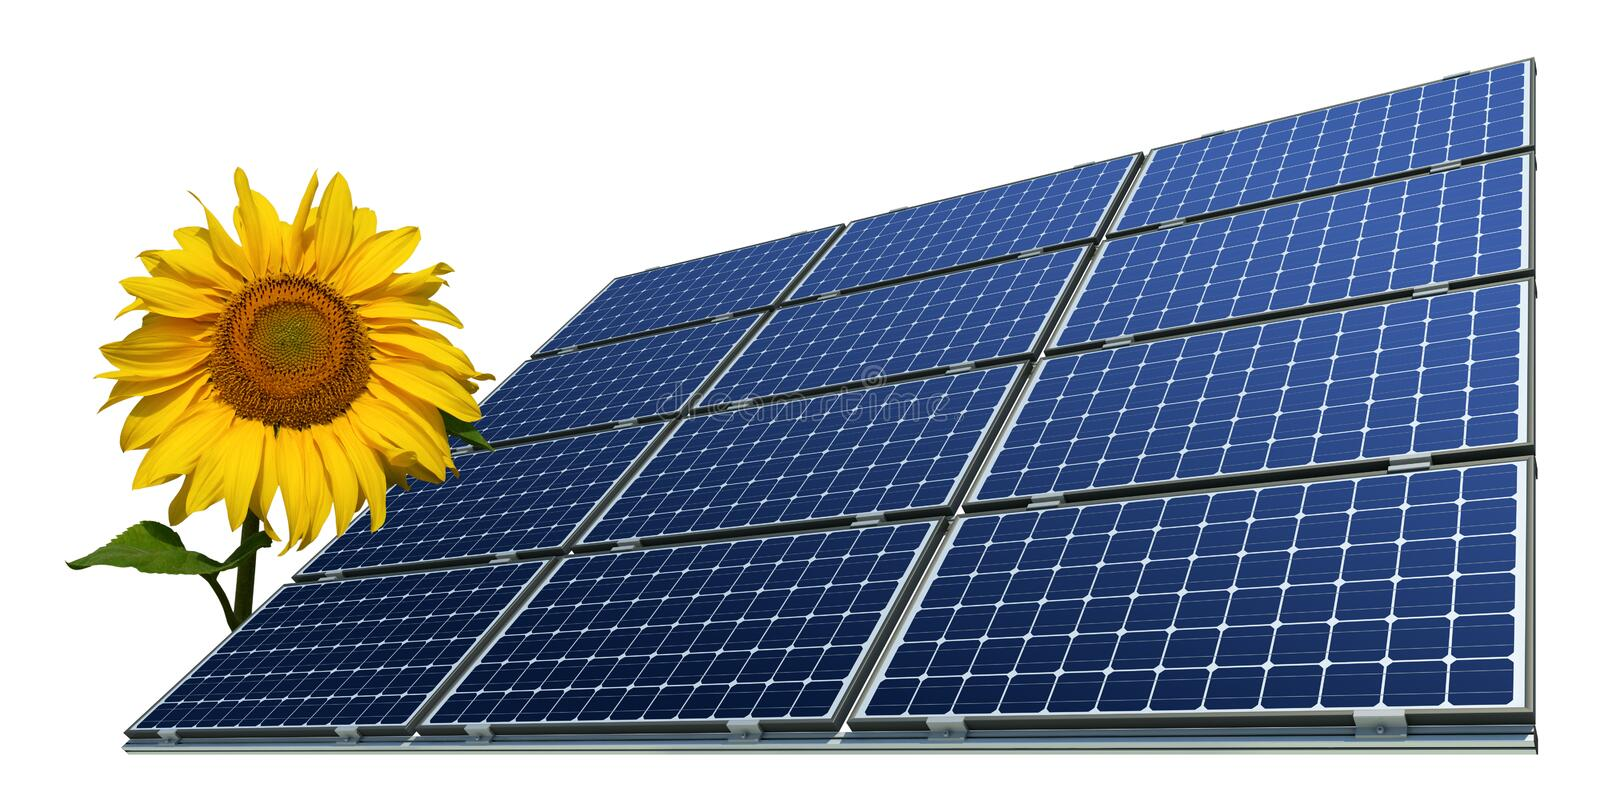 Download Mono-crystalline Solar Panels And Sunflower Stock Image - Image: 18391187